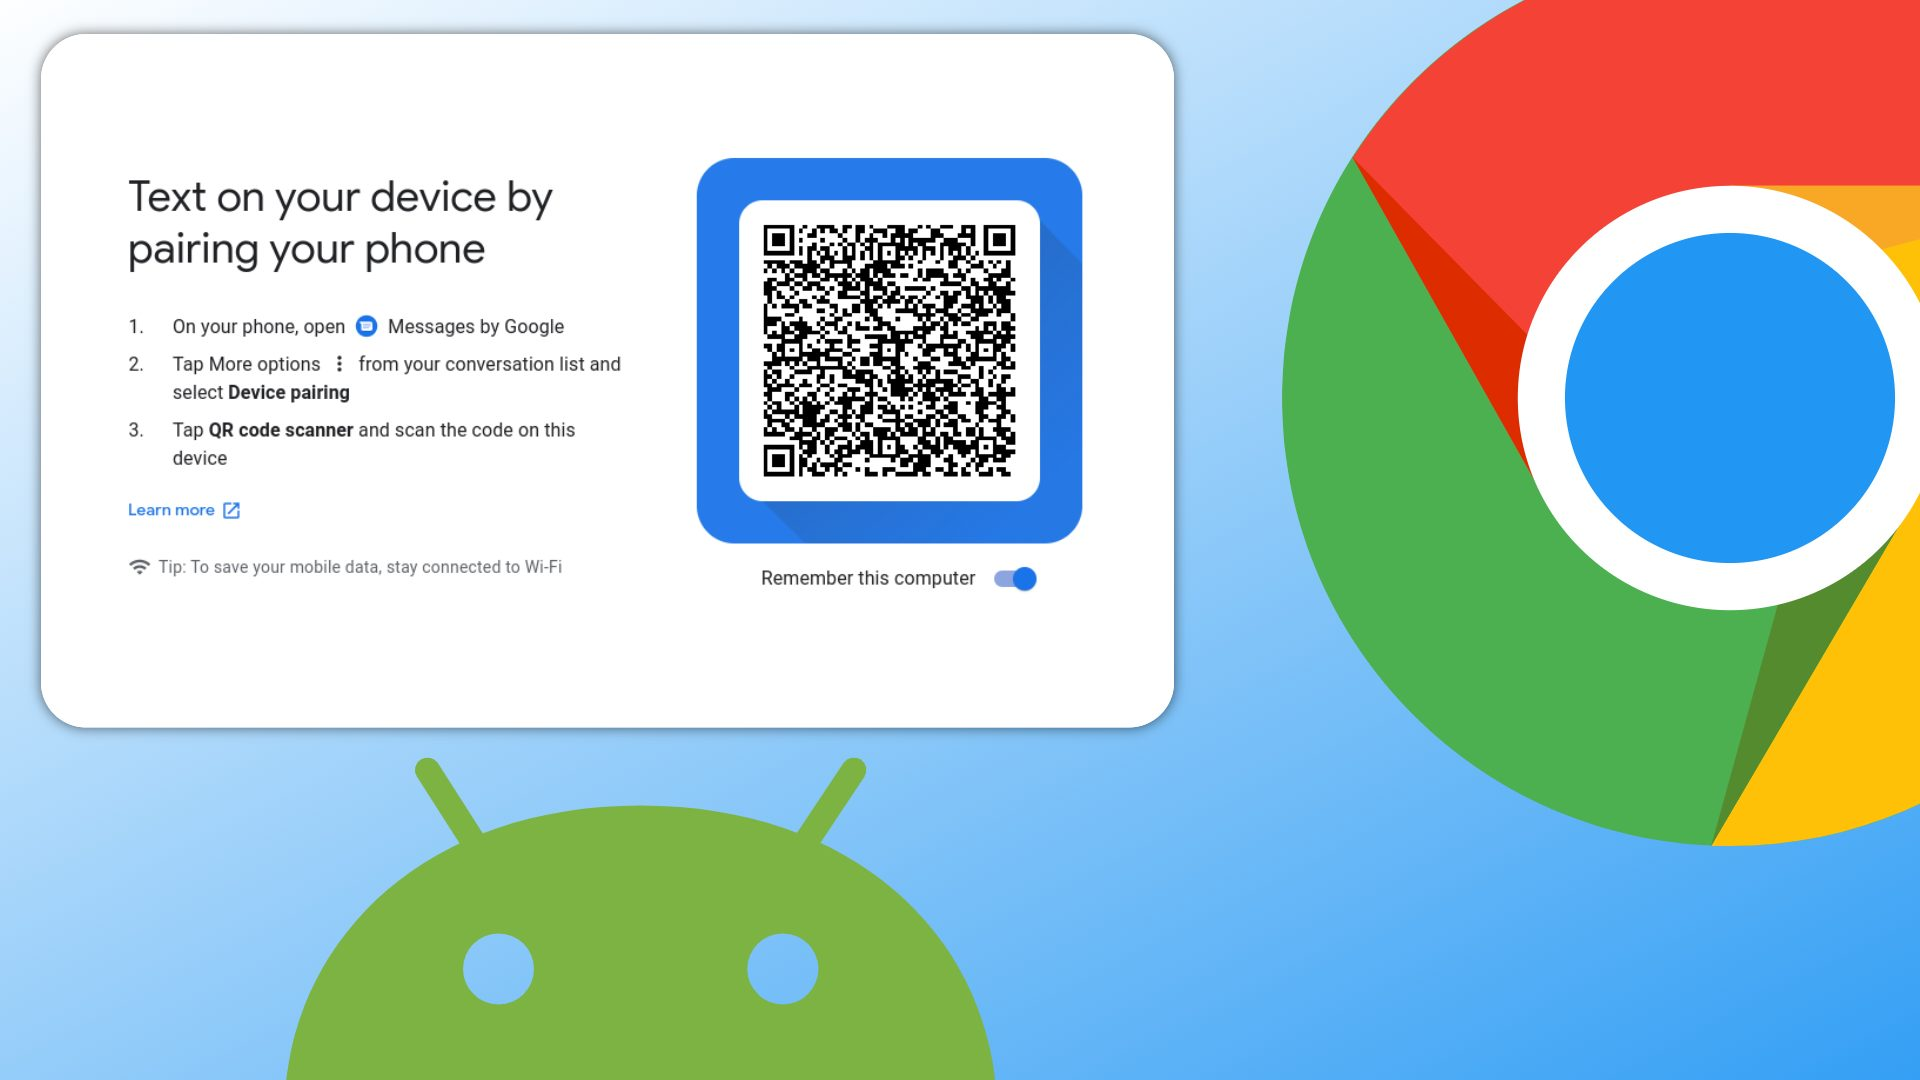 Google Messages integration on your Chromebook just got a new name